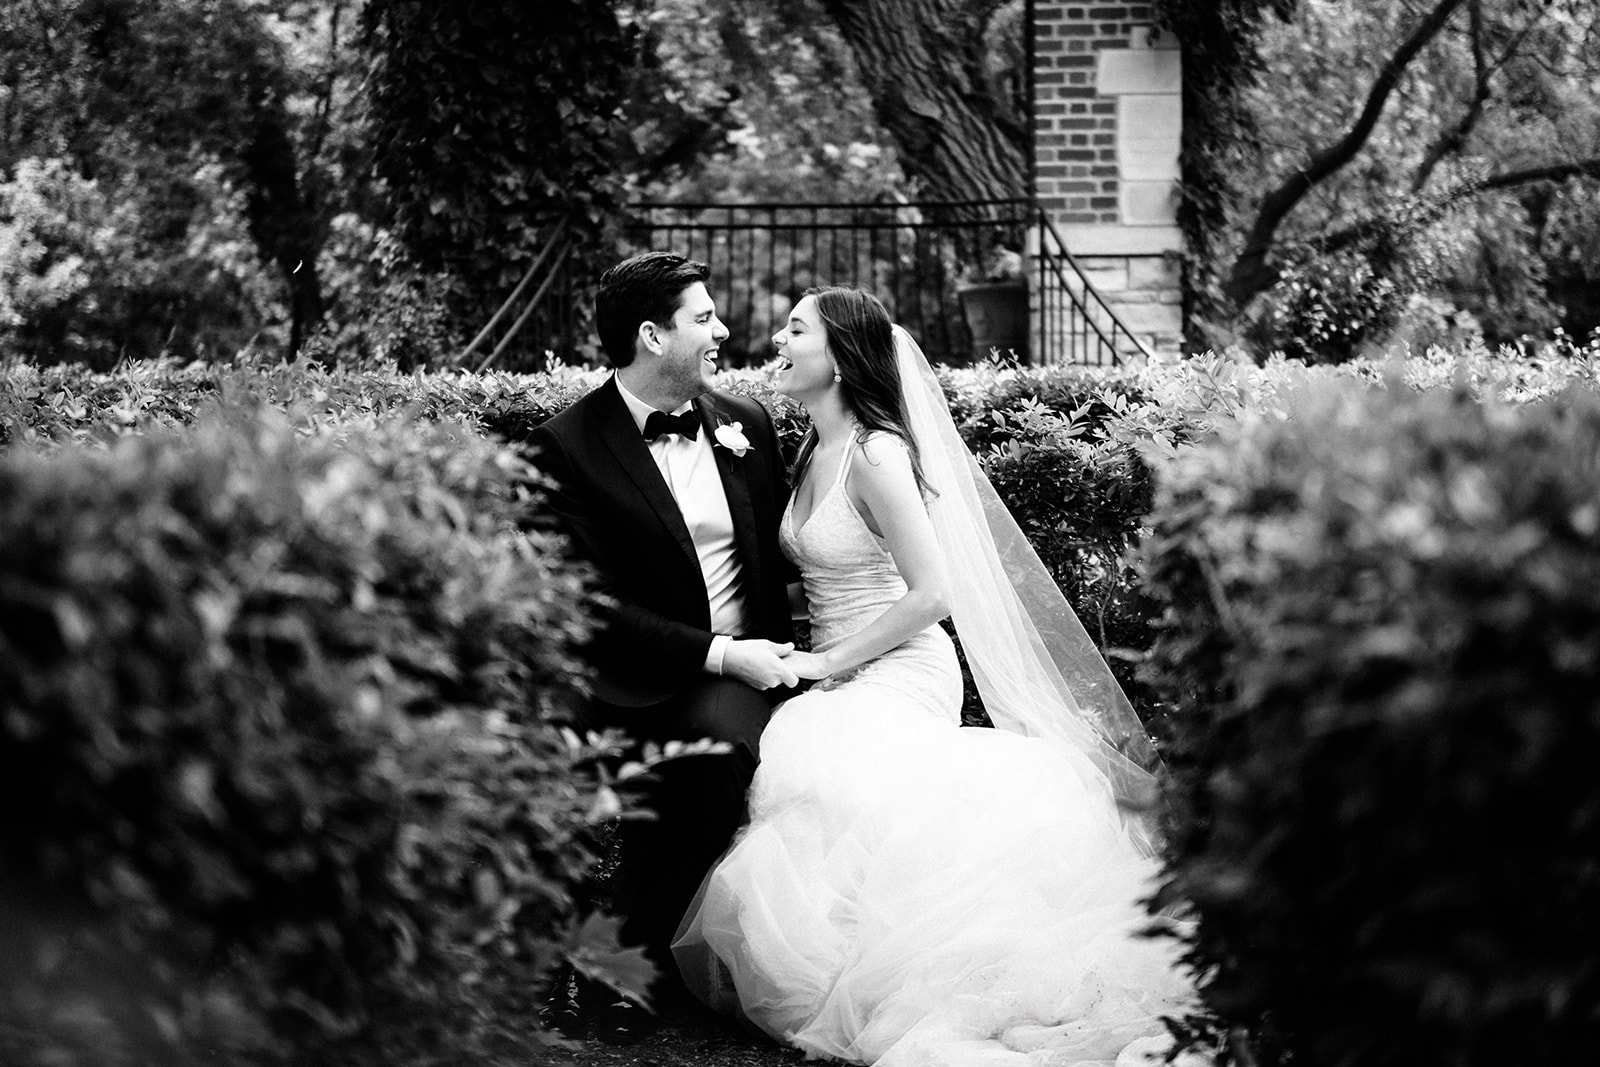 Documentary portraits of a bride and groom at their English garden wedding in Wisconsin.